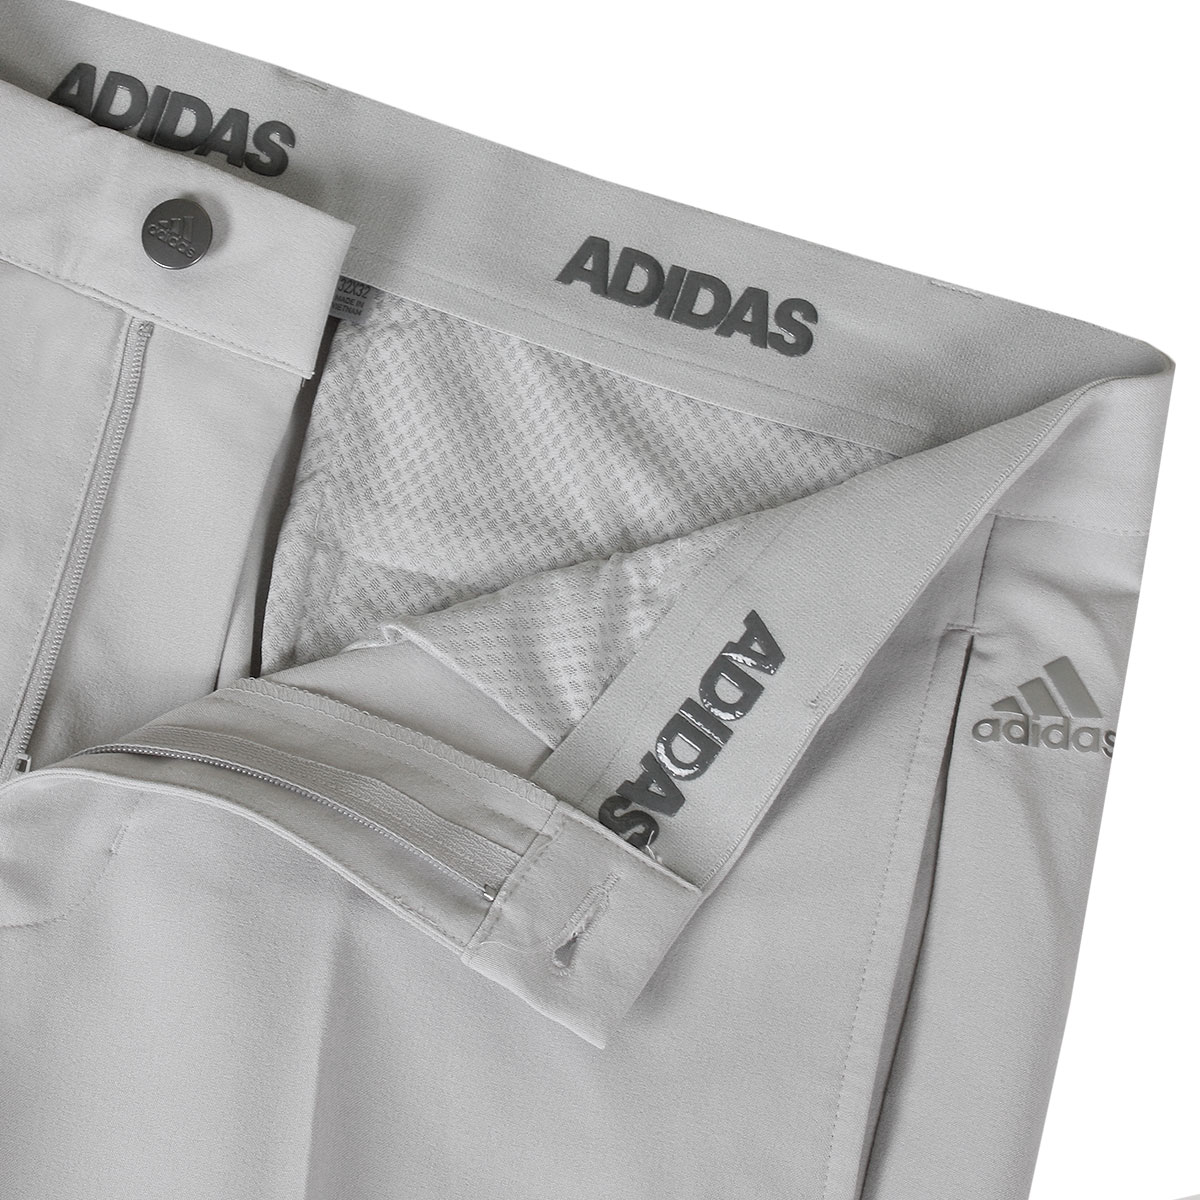 adidas-Golf-Mens-Ultimate-3-Stripes-Stretch-Pant-Trousers-44-OFF-RRP Indexbild 30